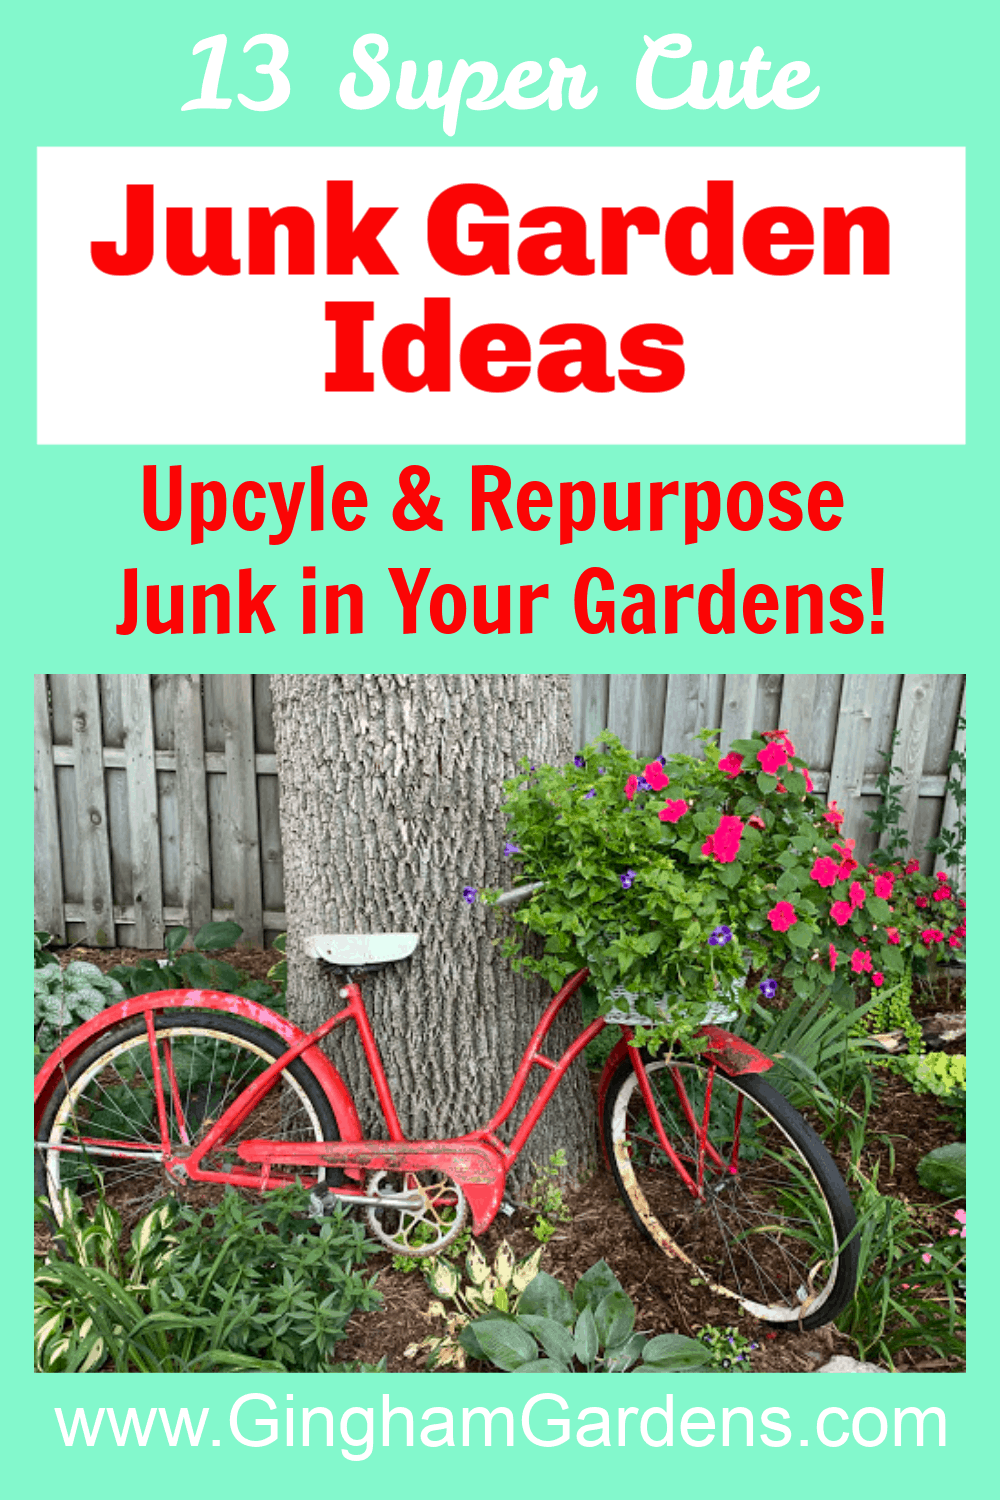 Bicycle in a Garden with Text Overlay Junk Garden Ideas